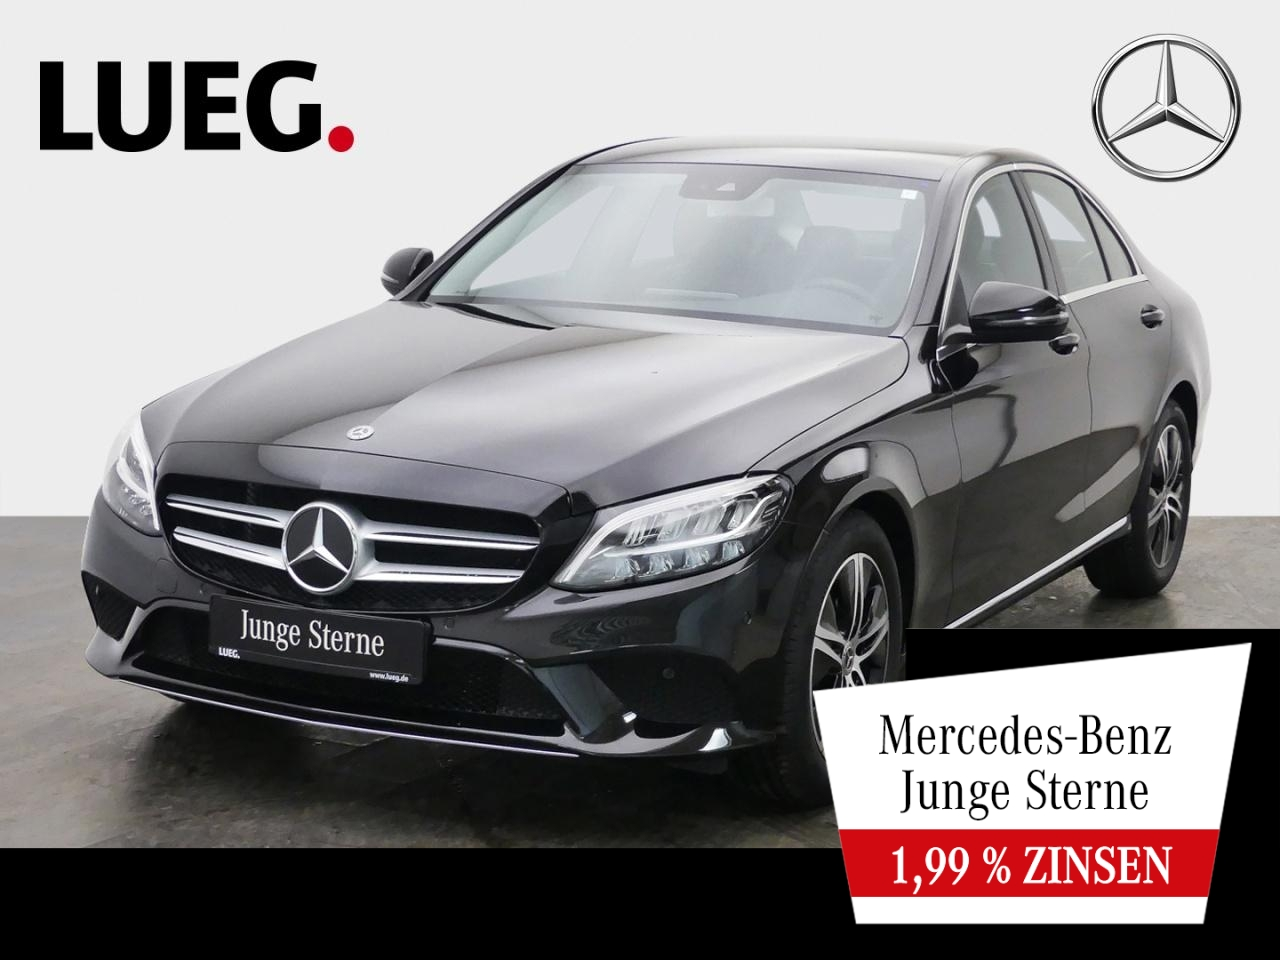 Mercedes-Benz C 180 Avantgarde+Navi+LED-HP+SpurPk+CarPl+Kamera, Jahr 2020, Benzin